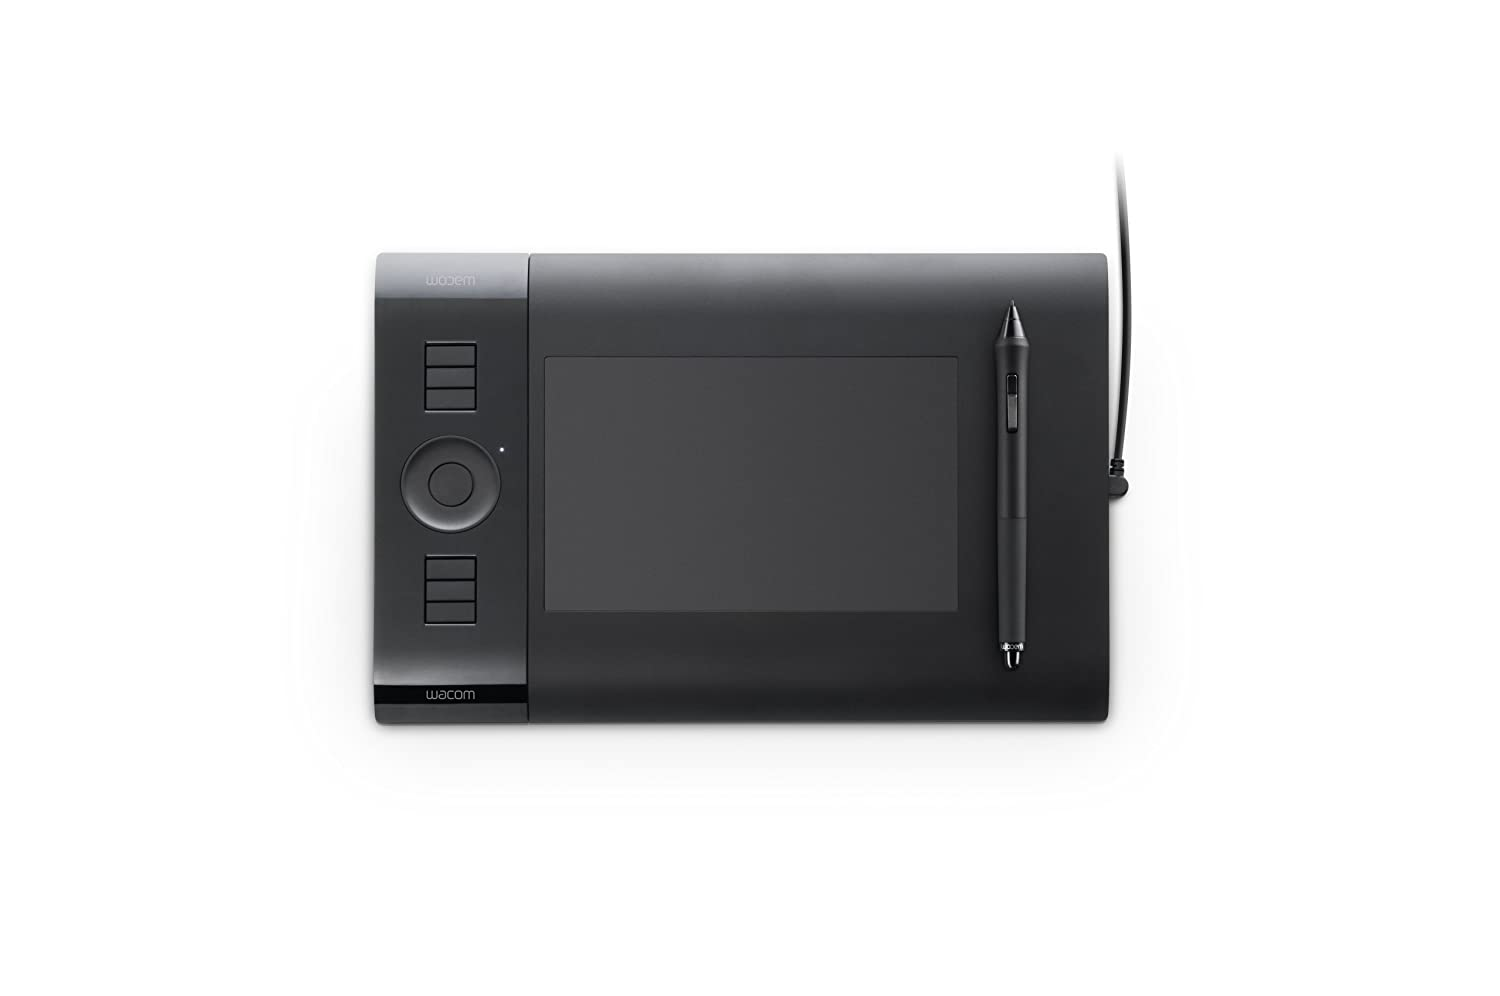 Drivers for Intuos, Cintiq, and other